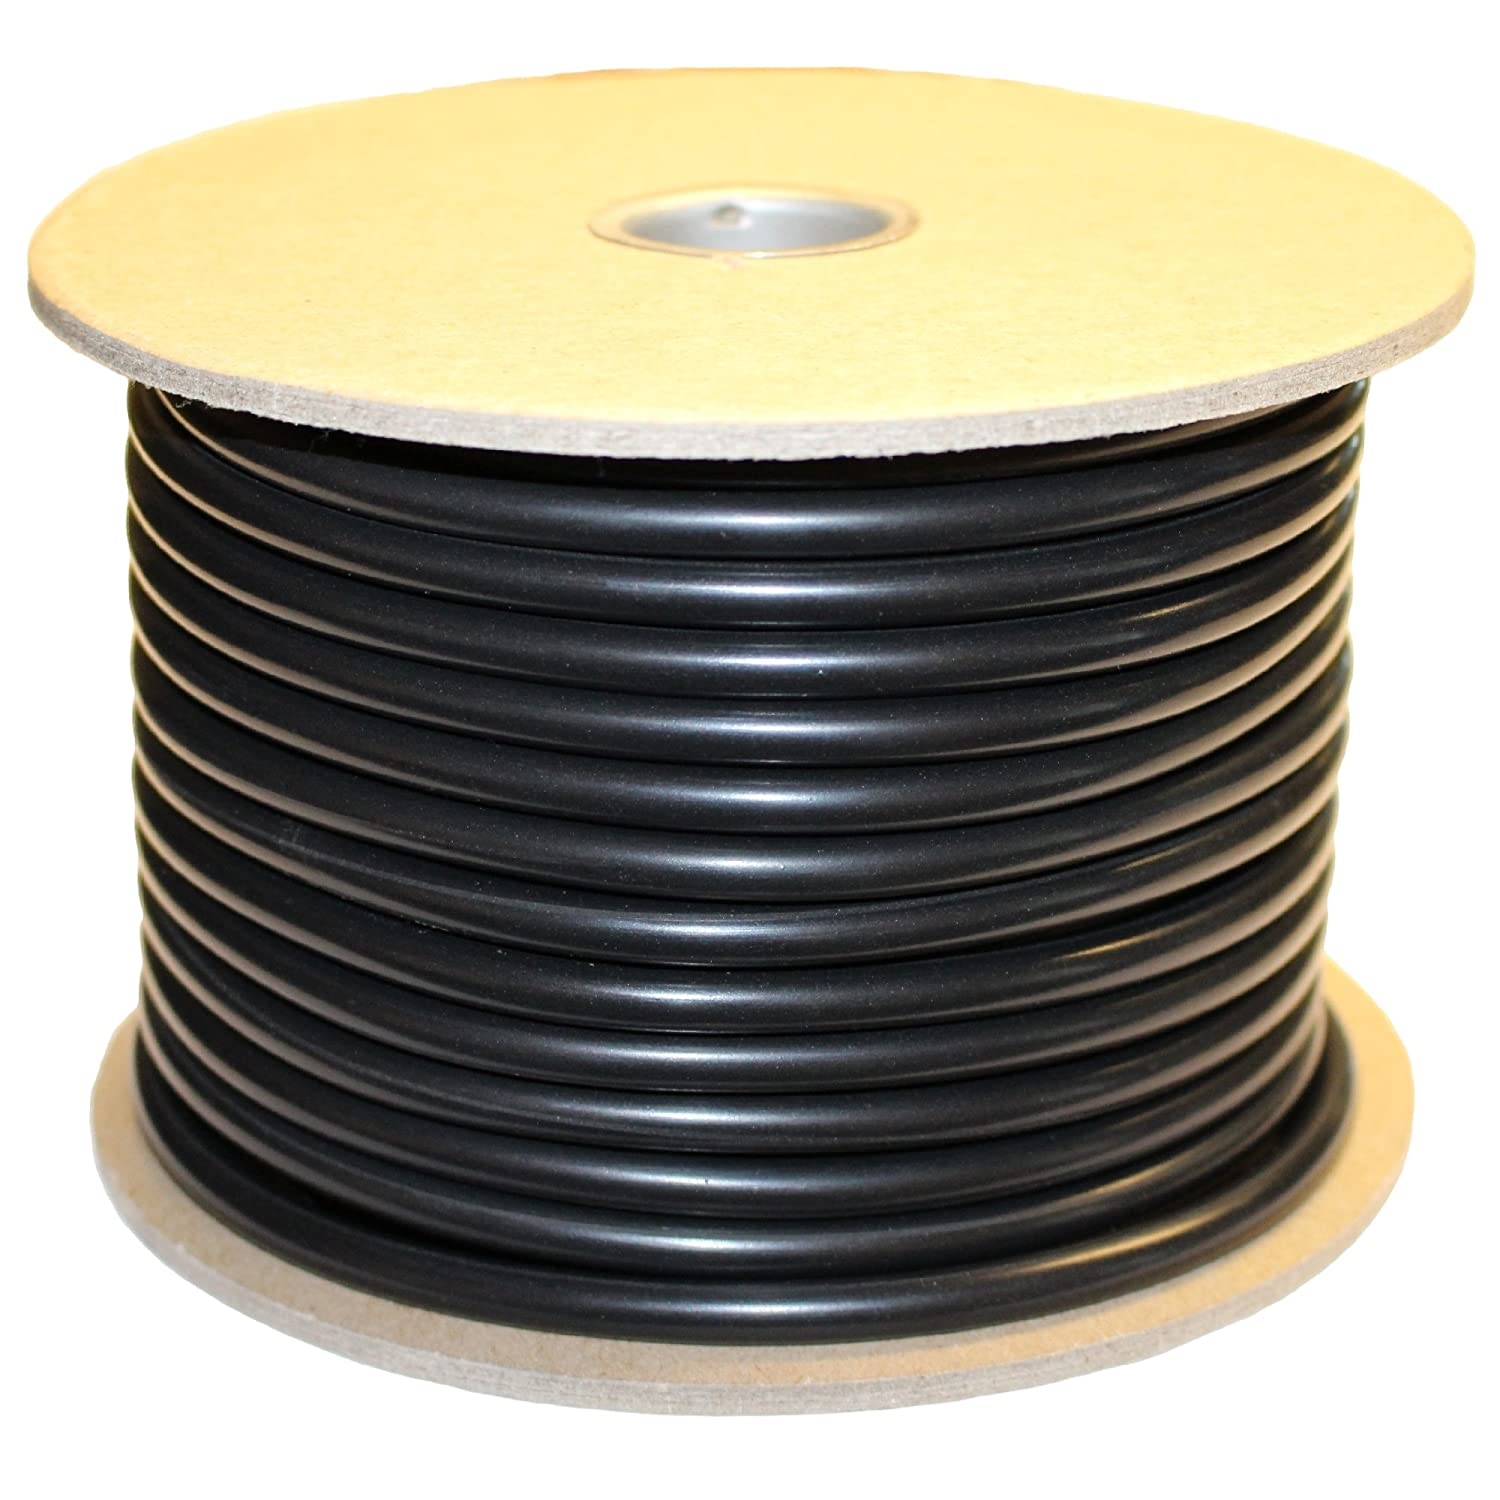 10 Piece Black Buna-N O-Ring Cord Stock .188 70A Durometer 0.188 Thickness 3//16 Actual